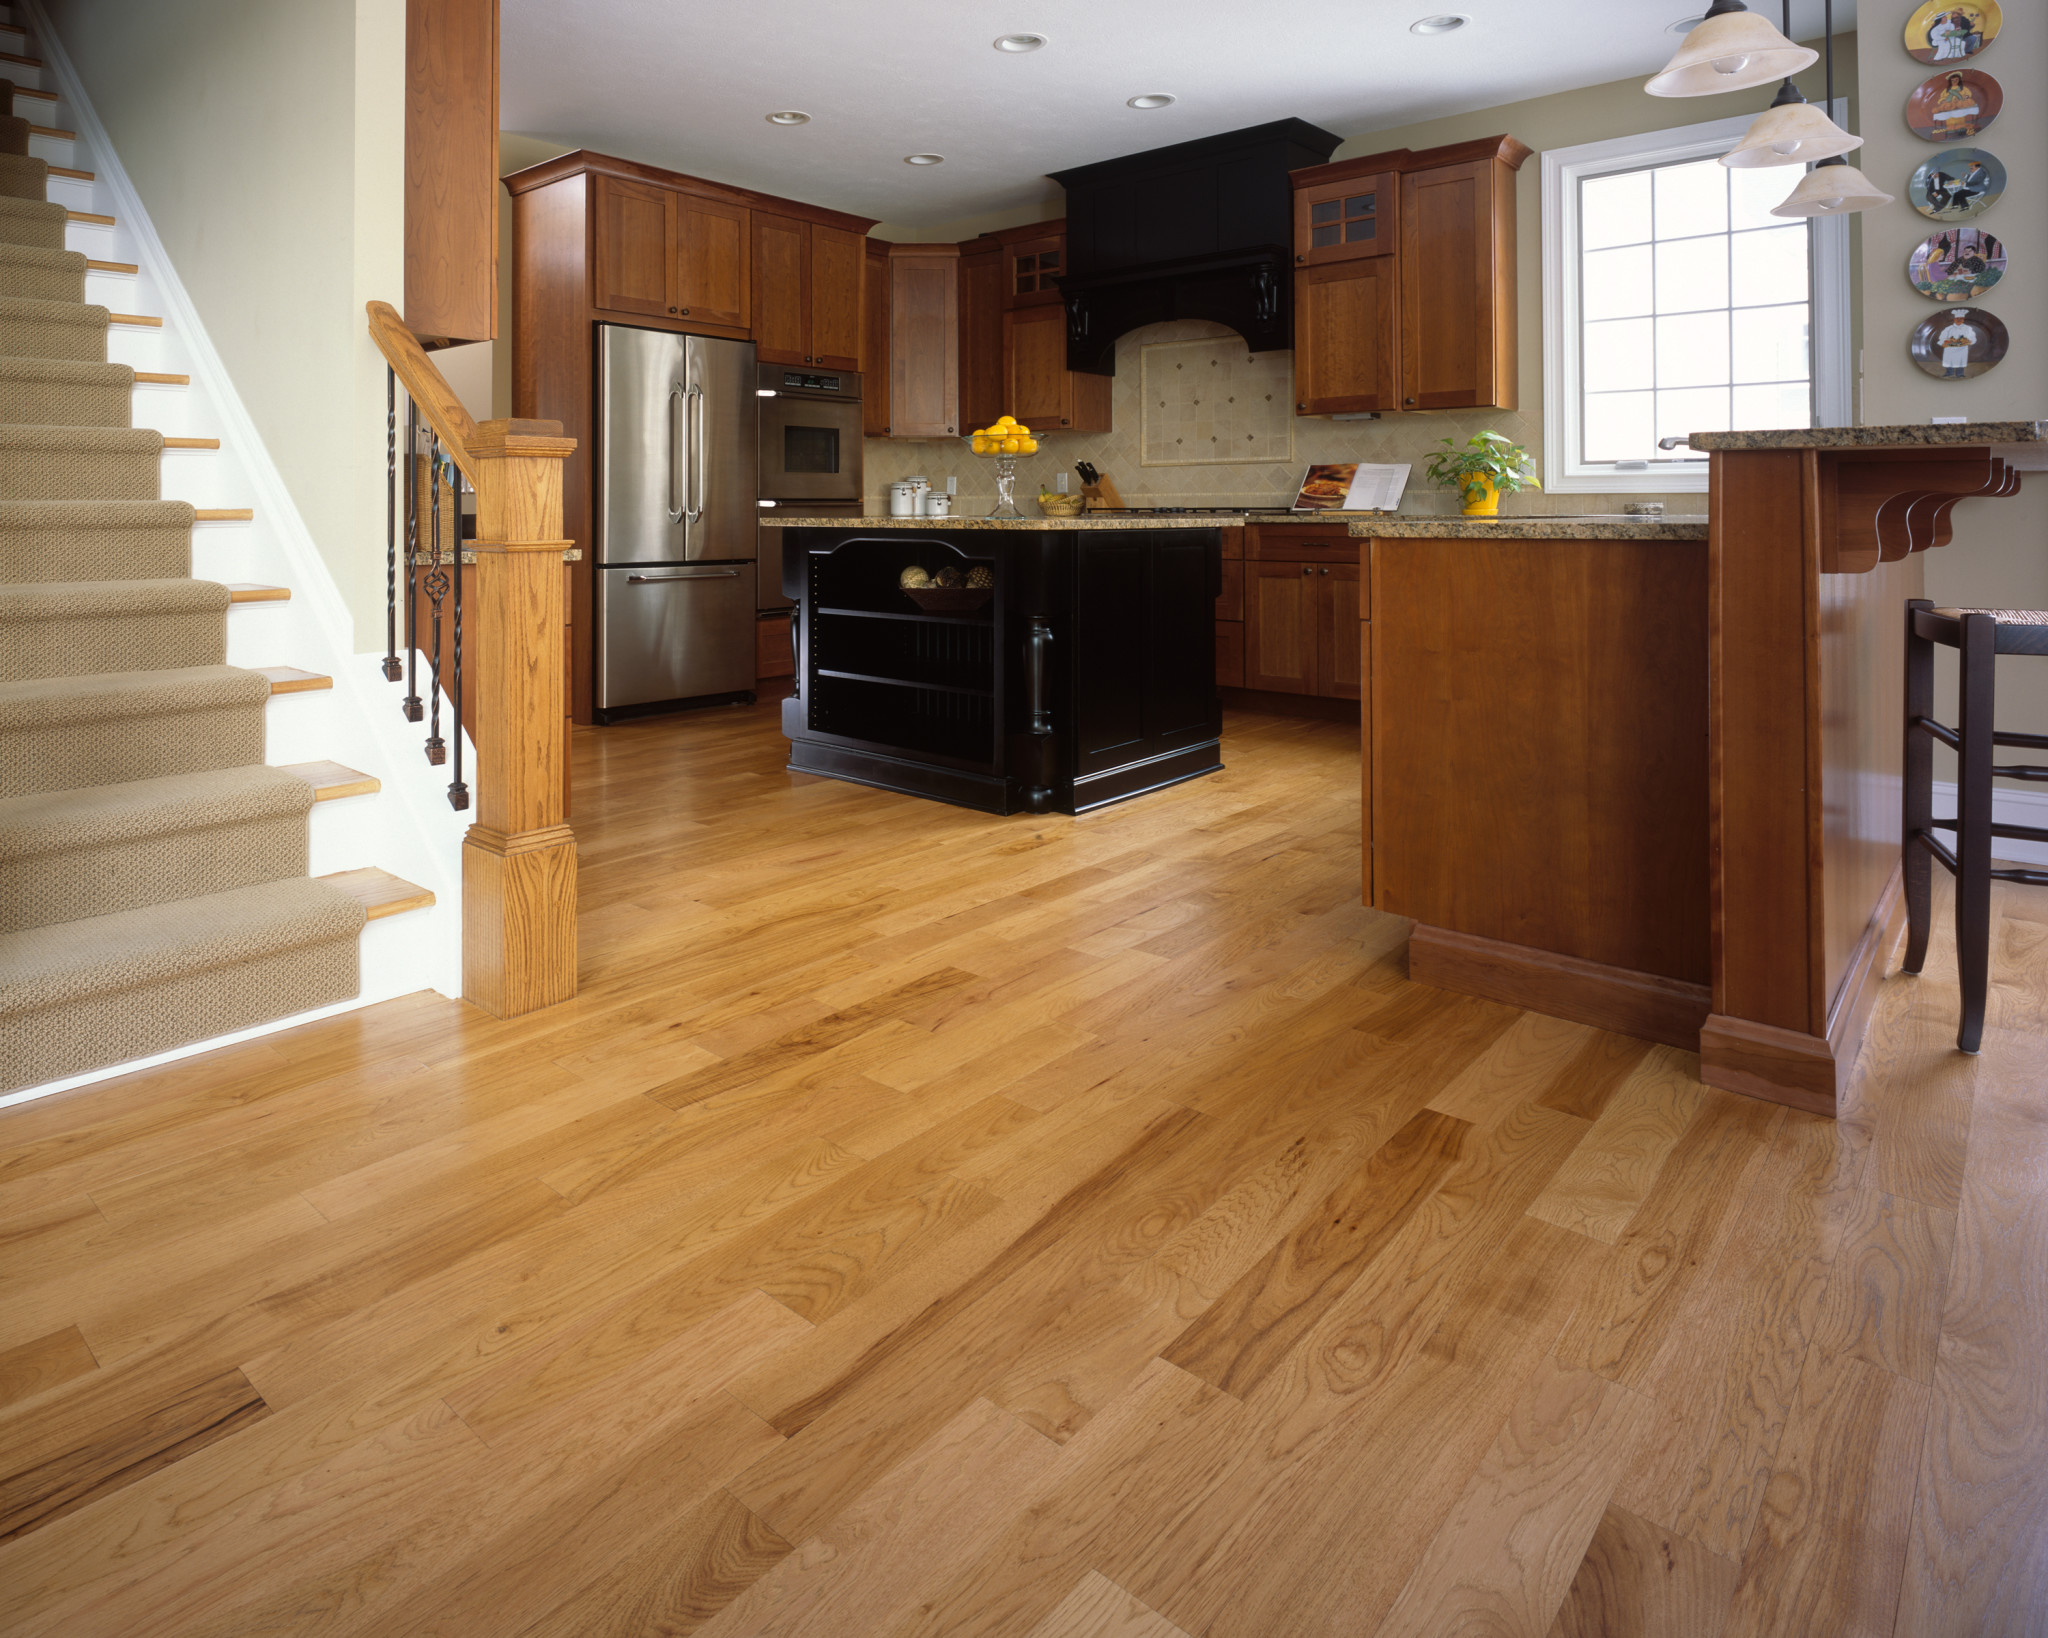 Wood Floors  Tile  Linoleum Jmarvinhandyman - Light wood floor kitchen